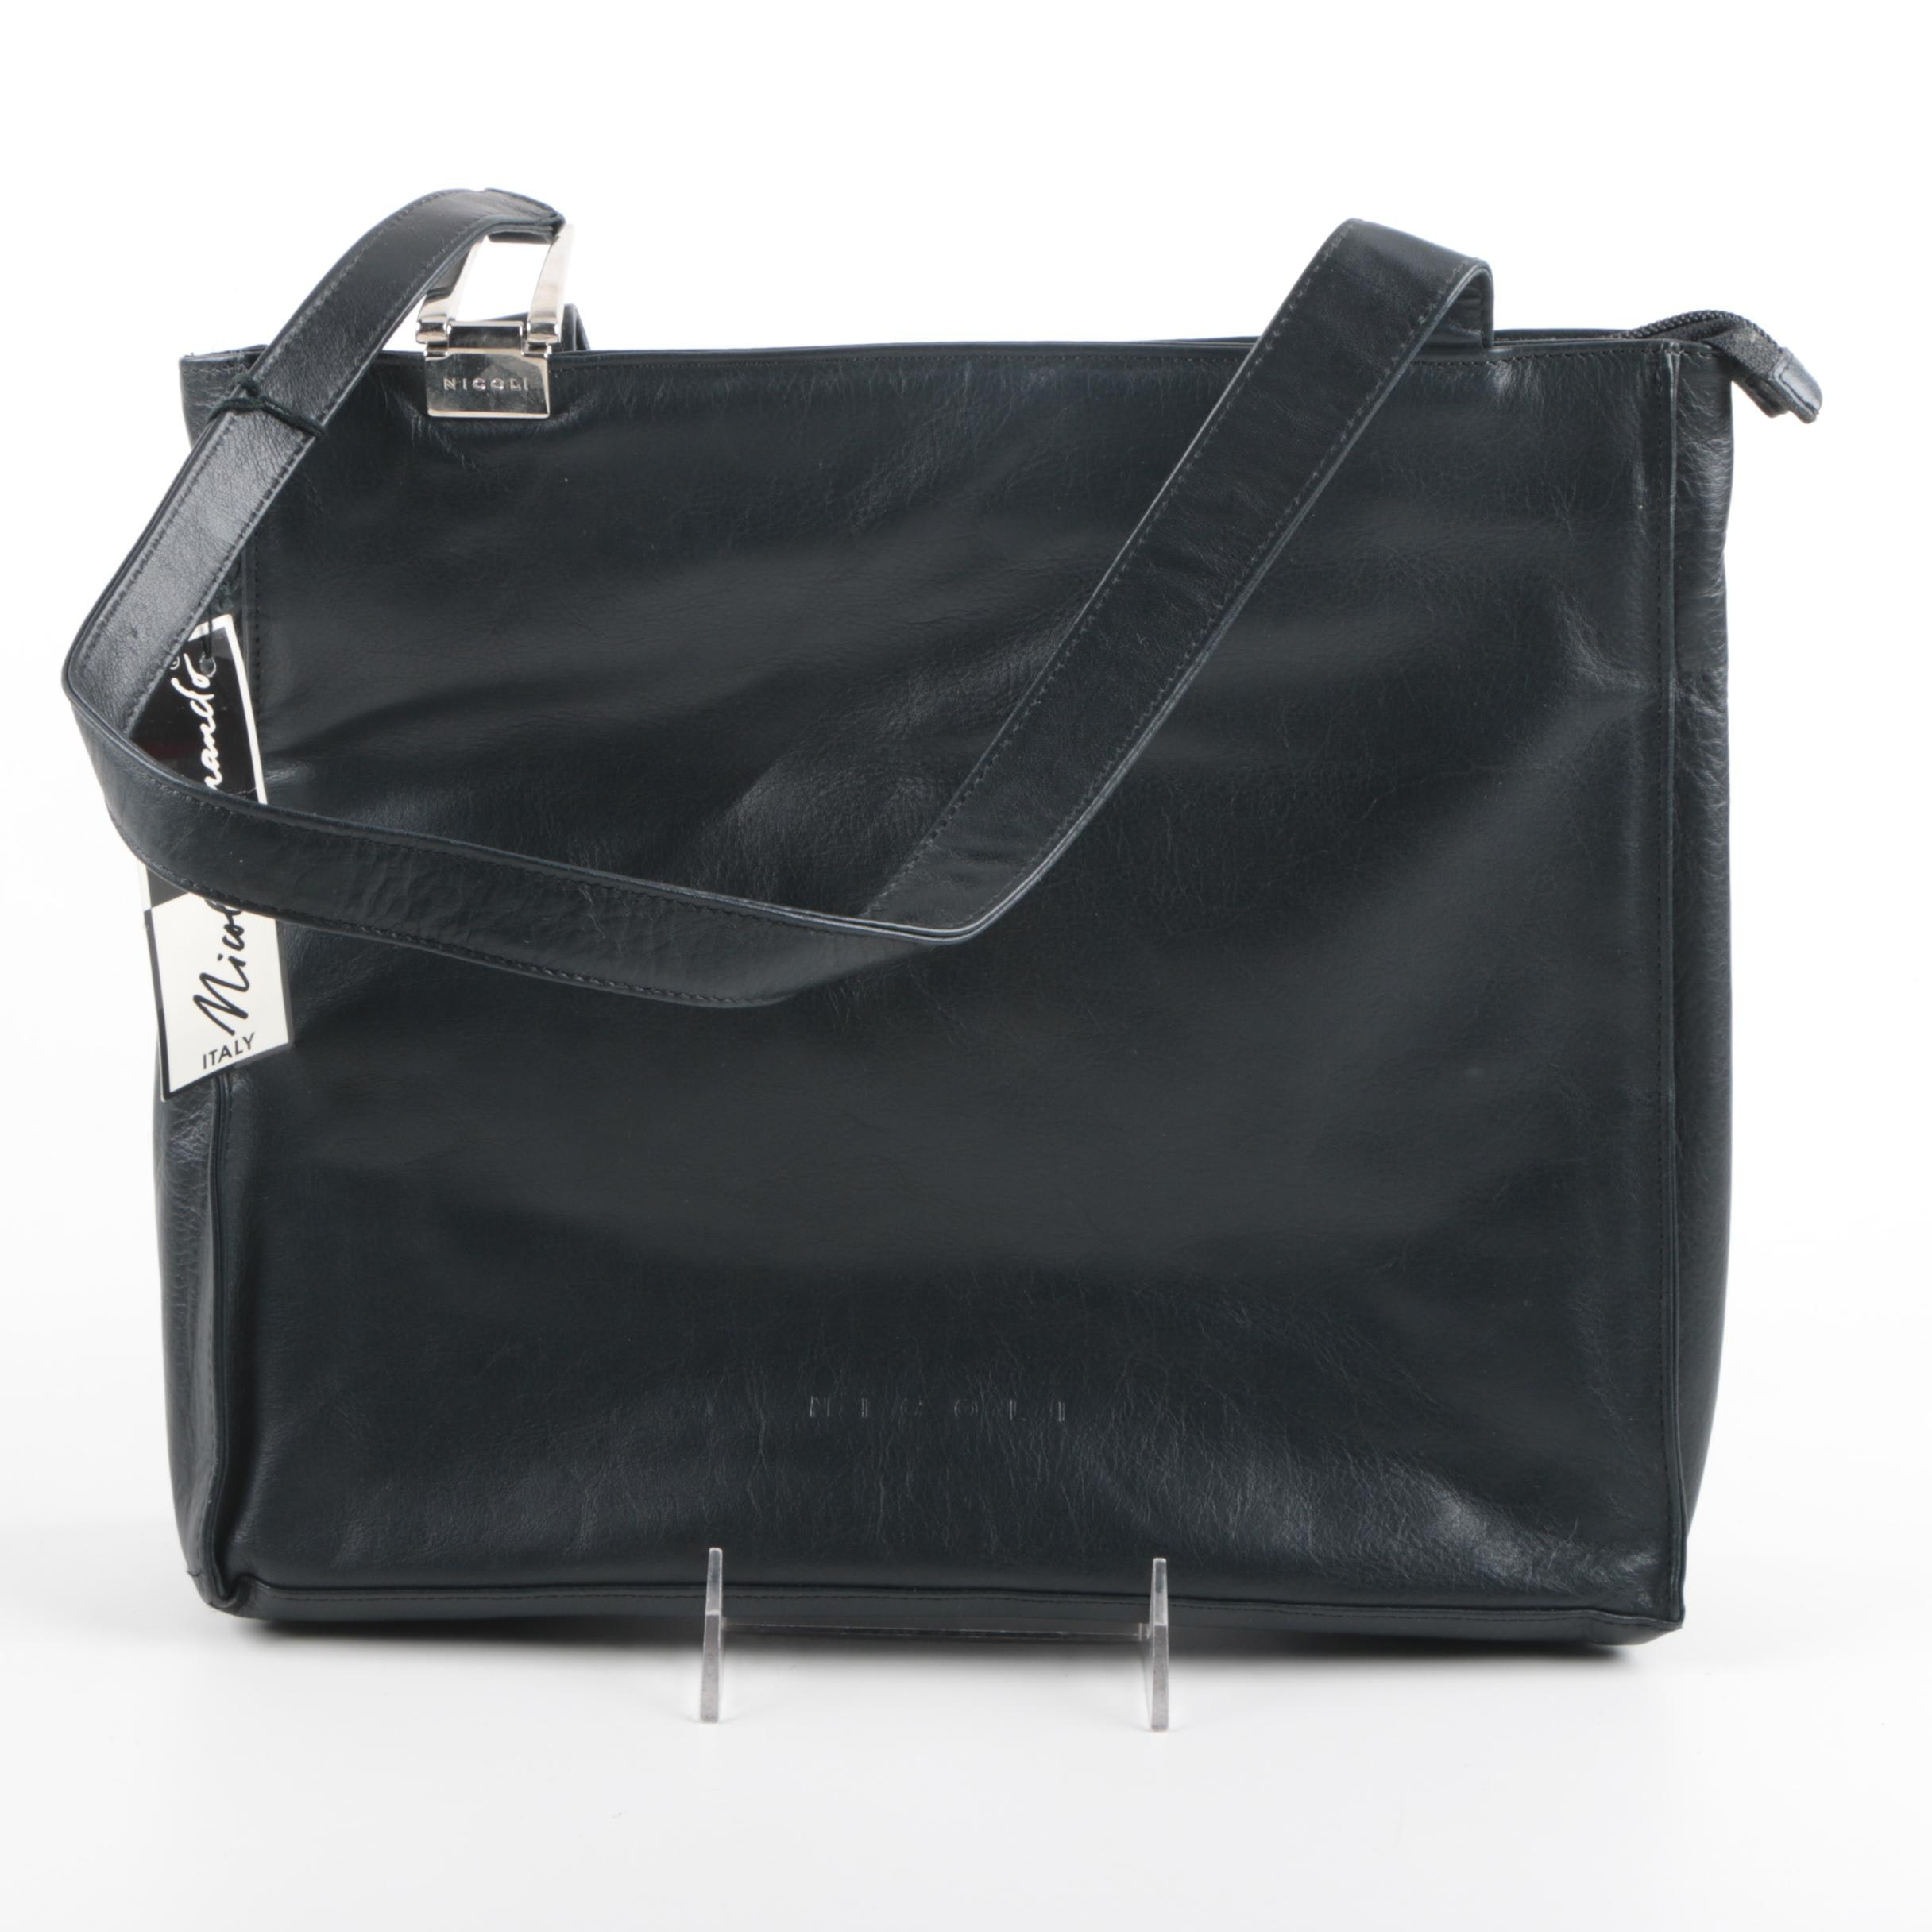 Nicoli Fernando Black Leather Handbag